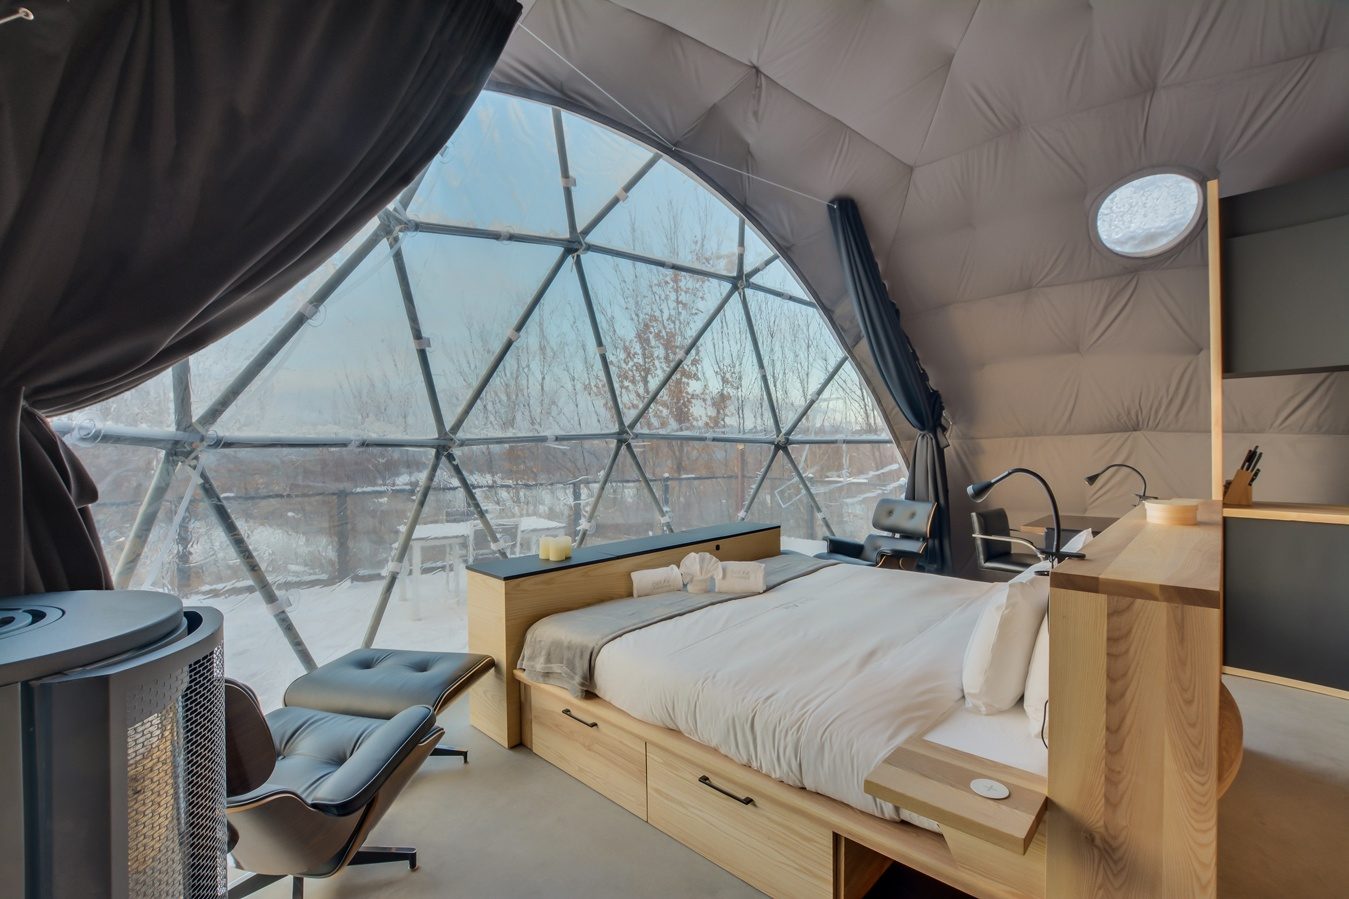 bubble hotel in Tremblant, Bel Air dome rentals